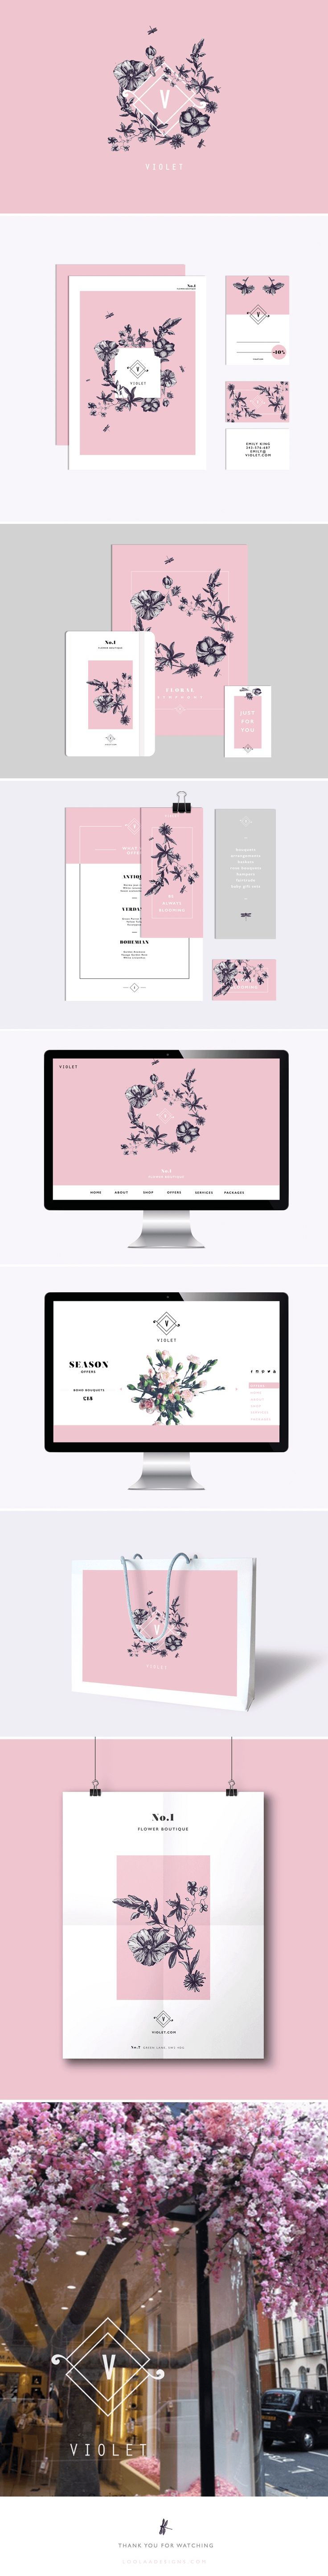 Branding and logo design / hand drawn boho flowers + pink + grey…